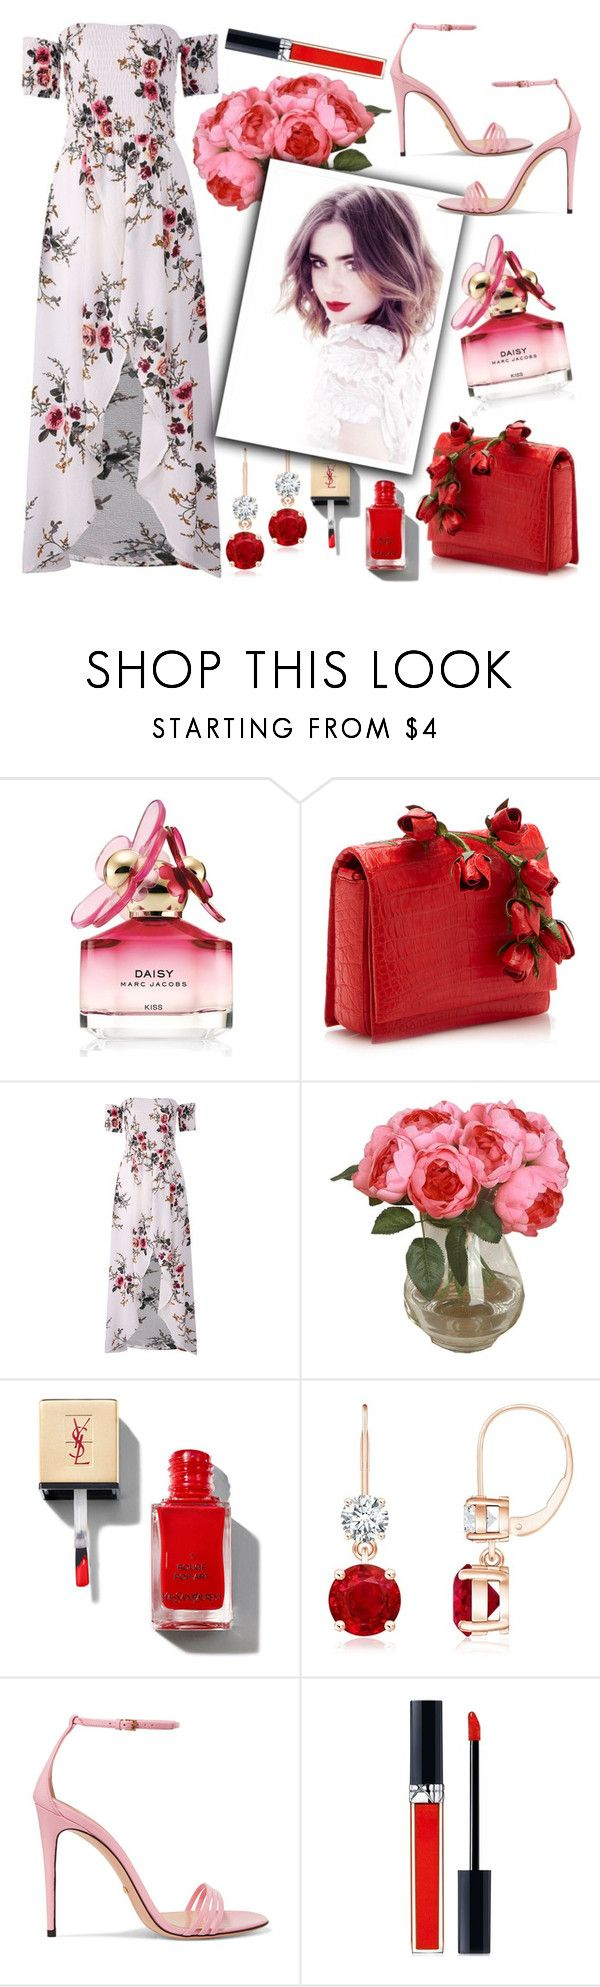 """""""Lily Collins"""" by chey-love ❤ liked on Polyvore featuring Marc Jacobs, Nancy Gonzalez, Gucci and Christian Dior"""